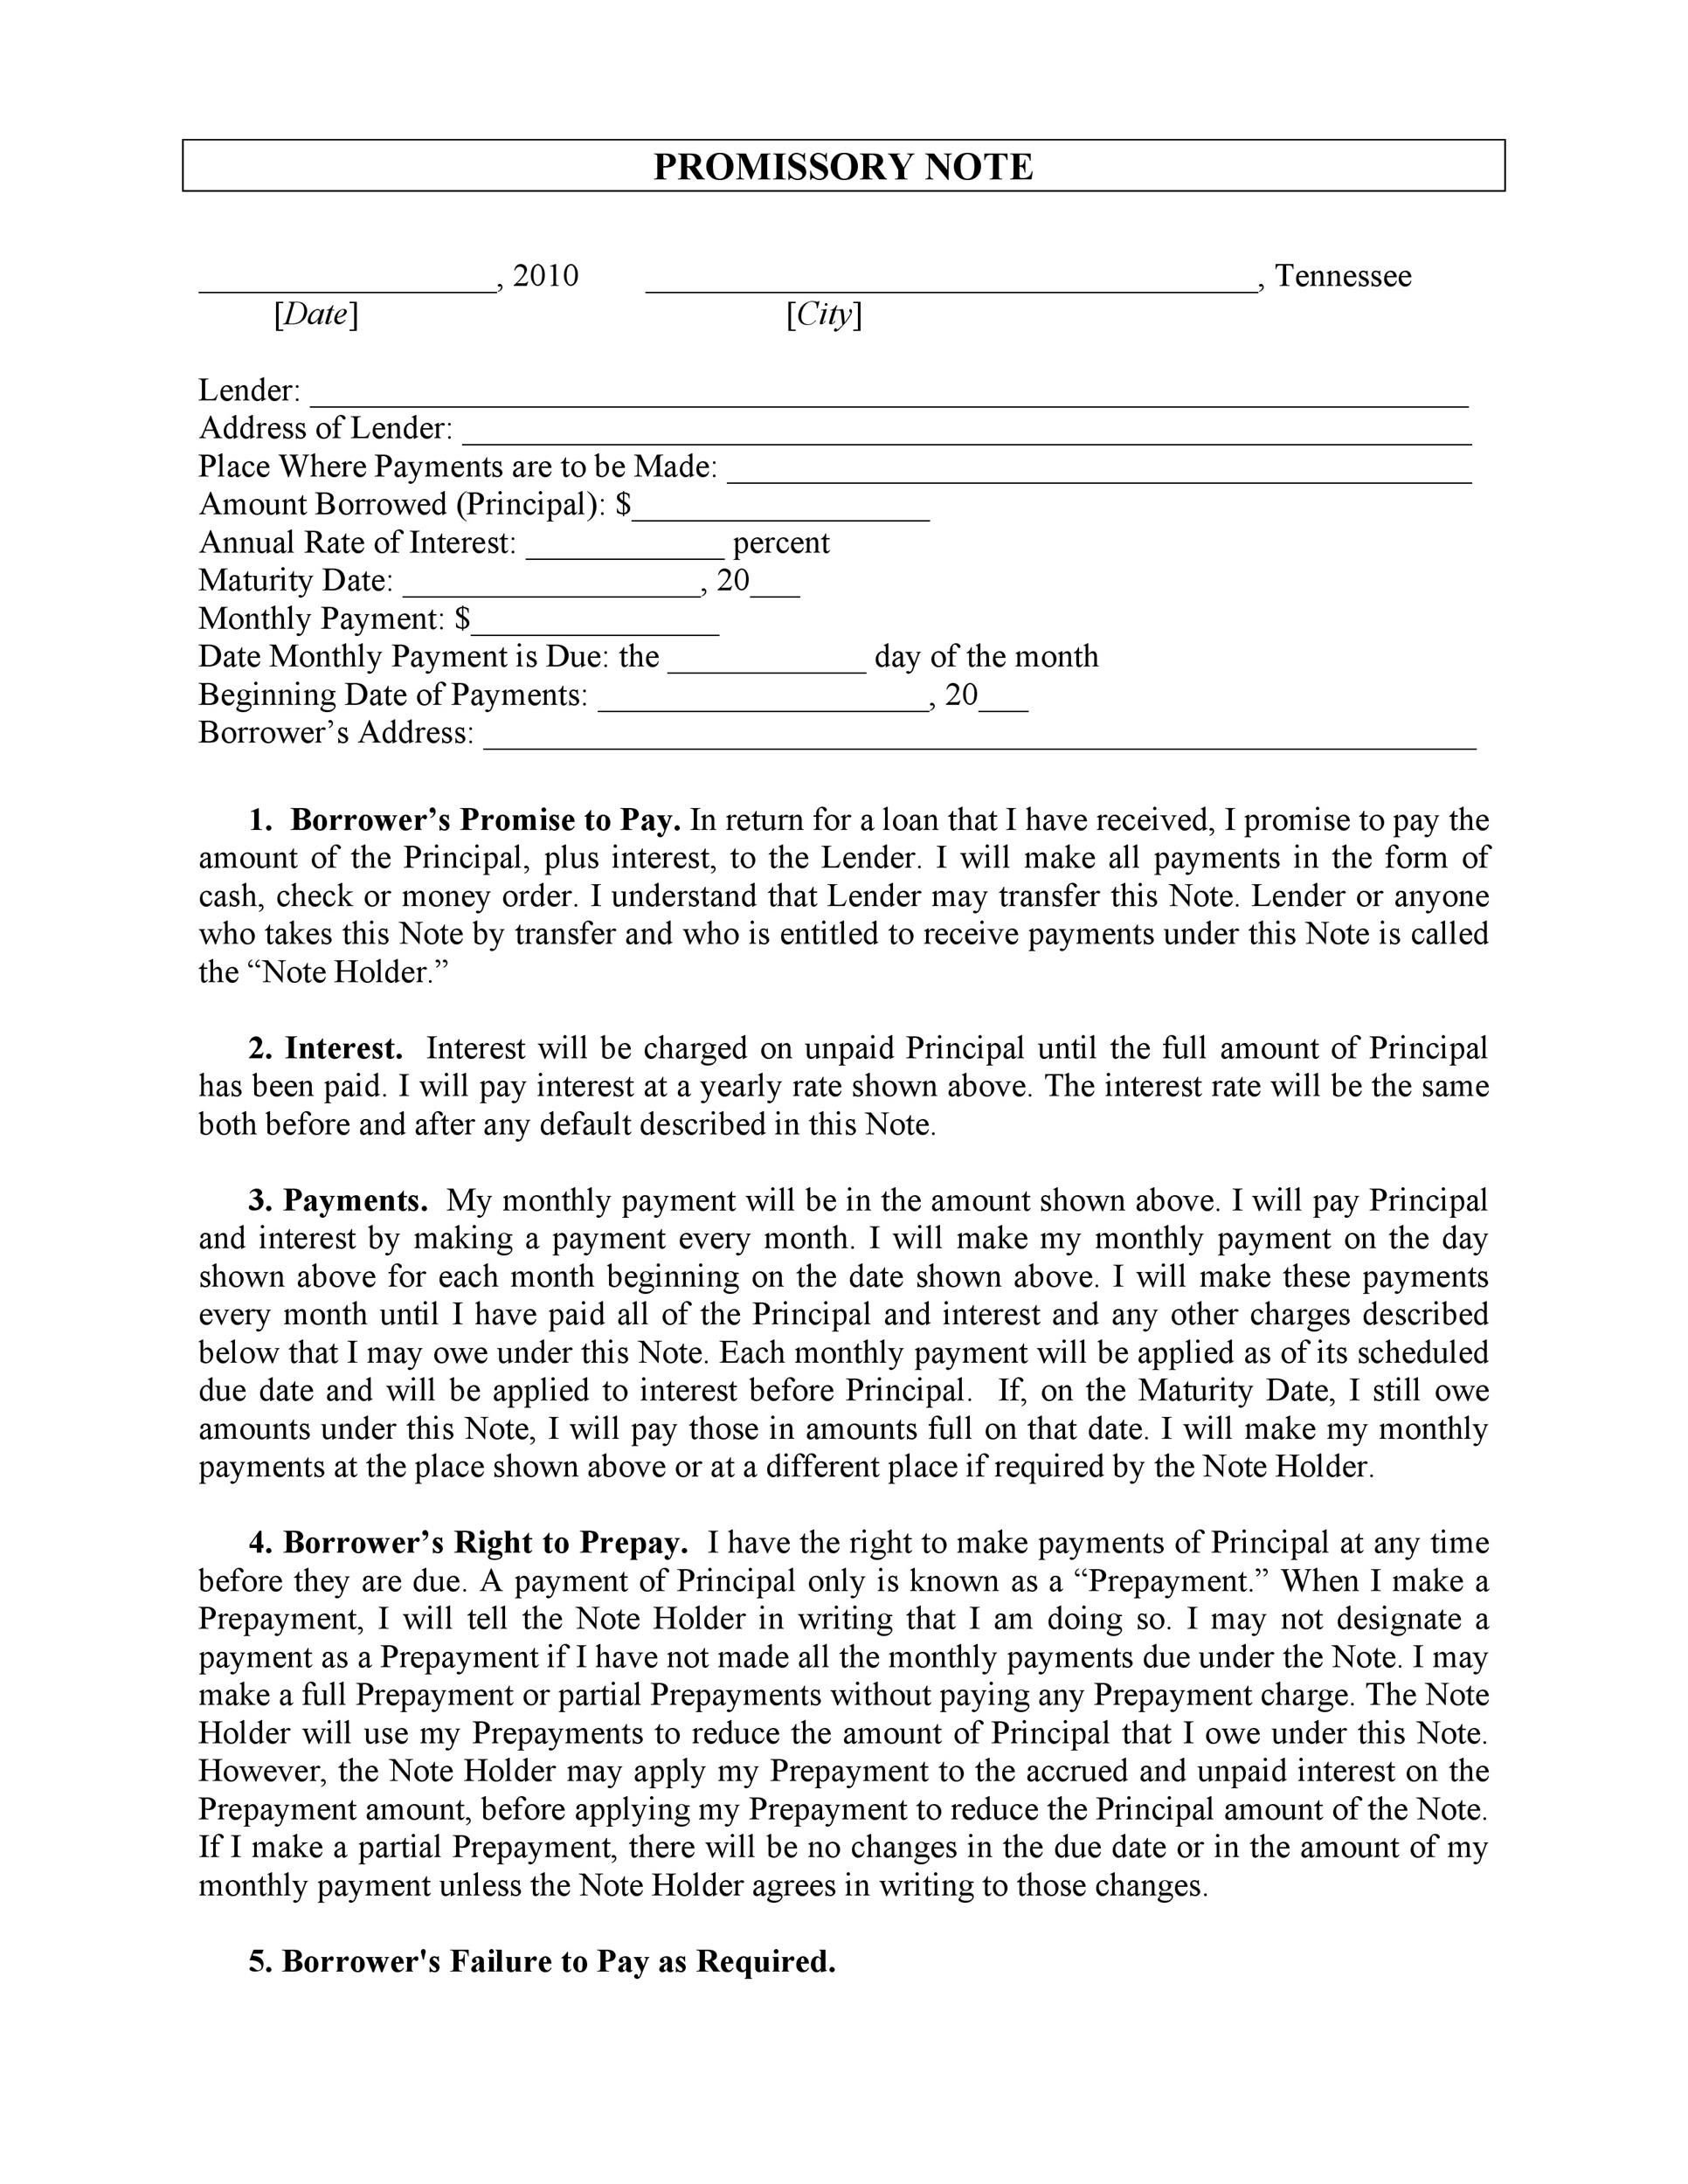 FREE Promissory Note Templates Forms Word PDF Template Lab - Promissory note with interest template